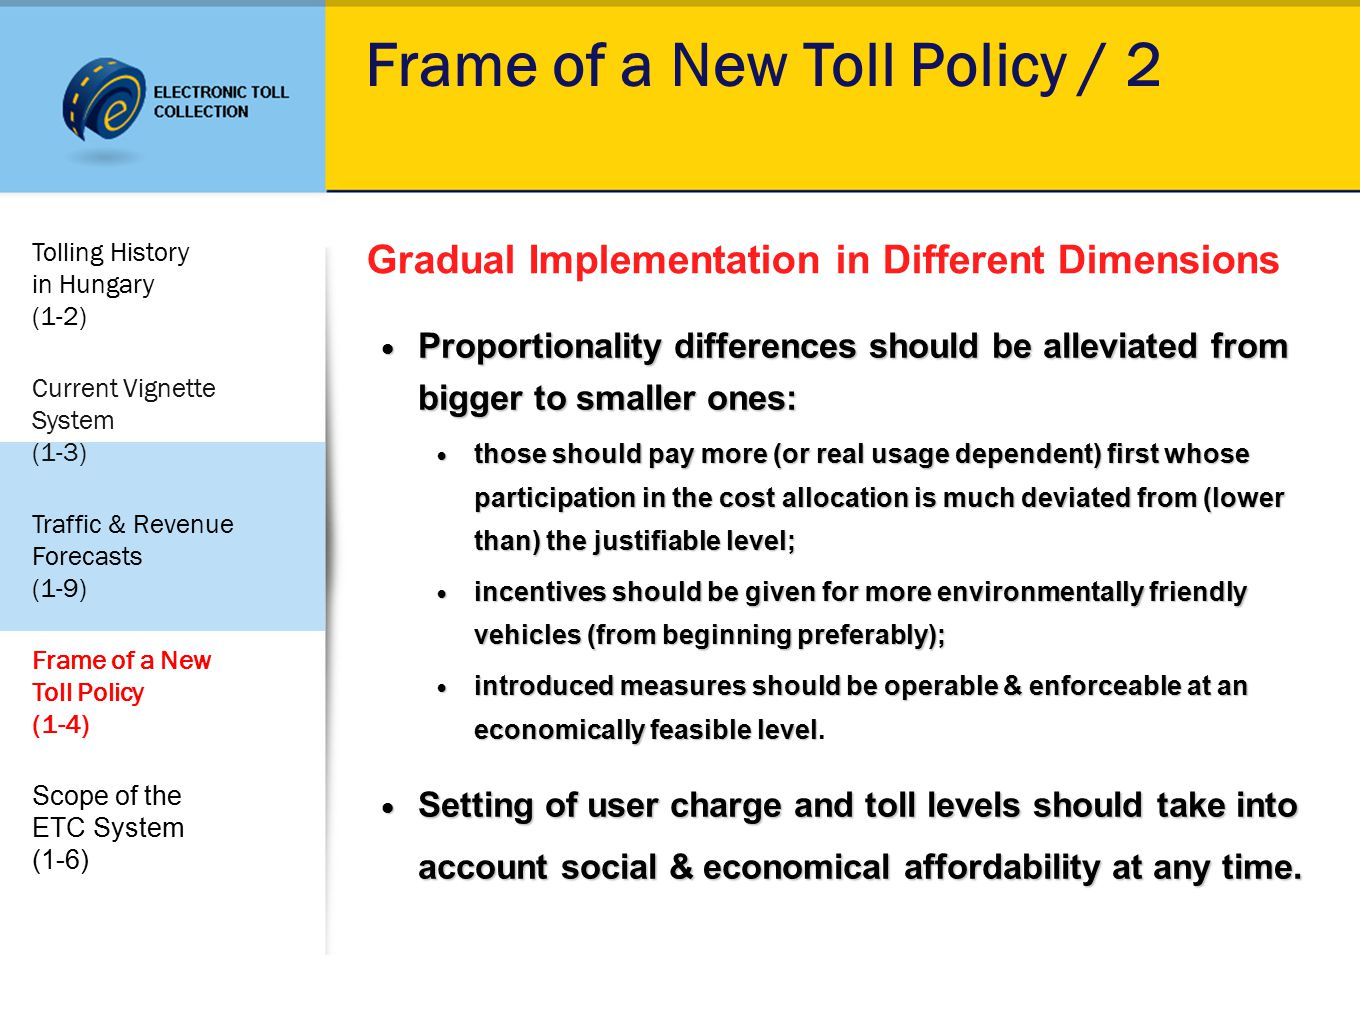 Frame of a New Toll Policy / 2 Gradual Implementation in Different Dimensions Proportionality differences should be alleviated from bigger to smaller ones: Proportionality differences should be alleviated from bigger to smaller ones: those should pay more (or real usage dependent) first whose participation in the cost allocation is much deviated from (lower than) the justifiable level; those should pay more (or real usage dependent) first whose participation in the cost allocation is much deviated from (lower than) the justifiable level; incentives should be given for more environmentally friendly vehicles (from beginning preferably); incentives should be given for more environmentally friendly vehicles (from beginning preferably); introduced measures should be operable & enforceable at an economically feasible level introduced measures should be operable & enforceable at an economically feasible level.